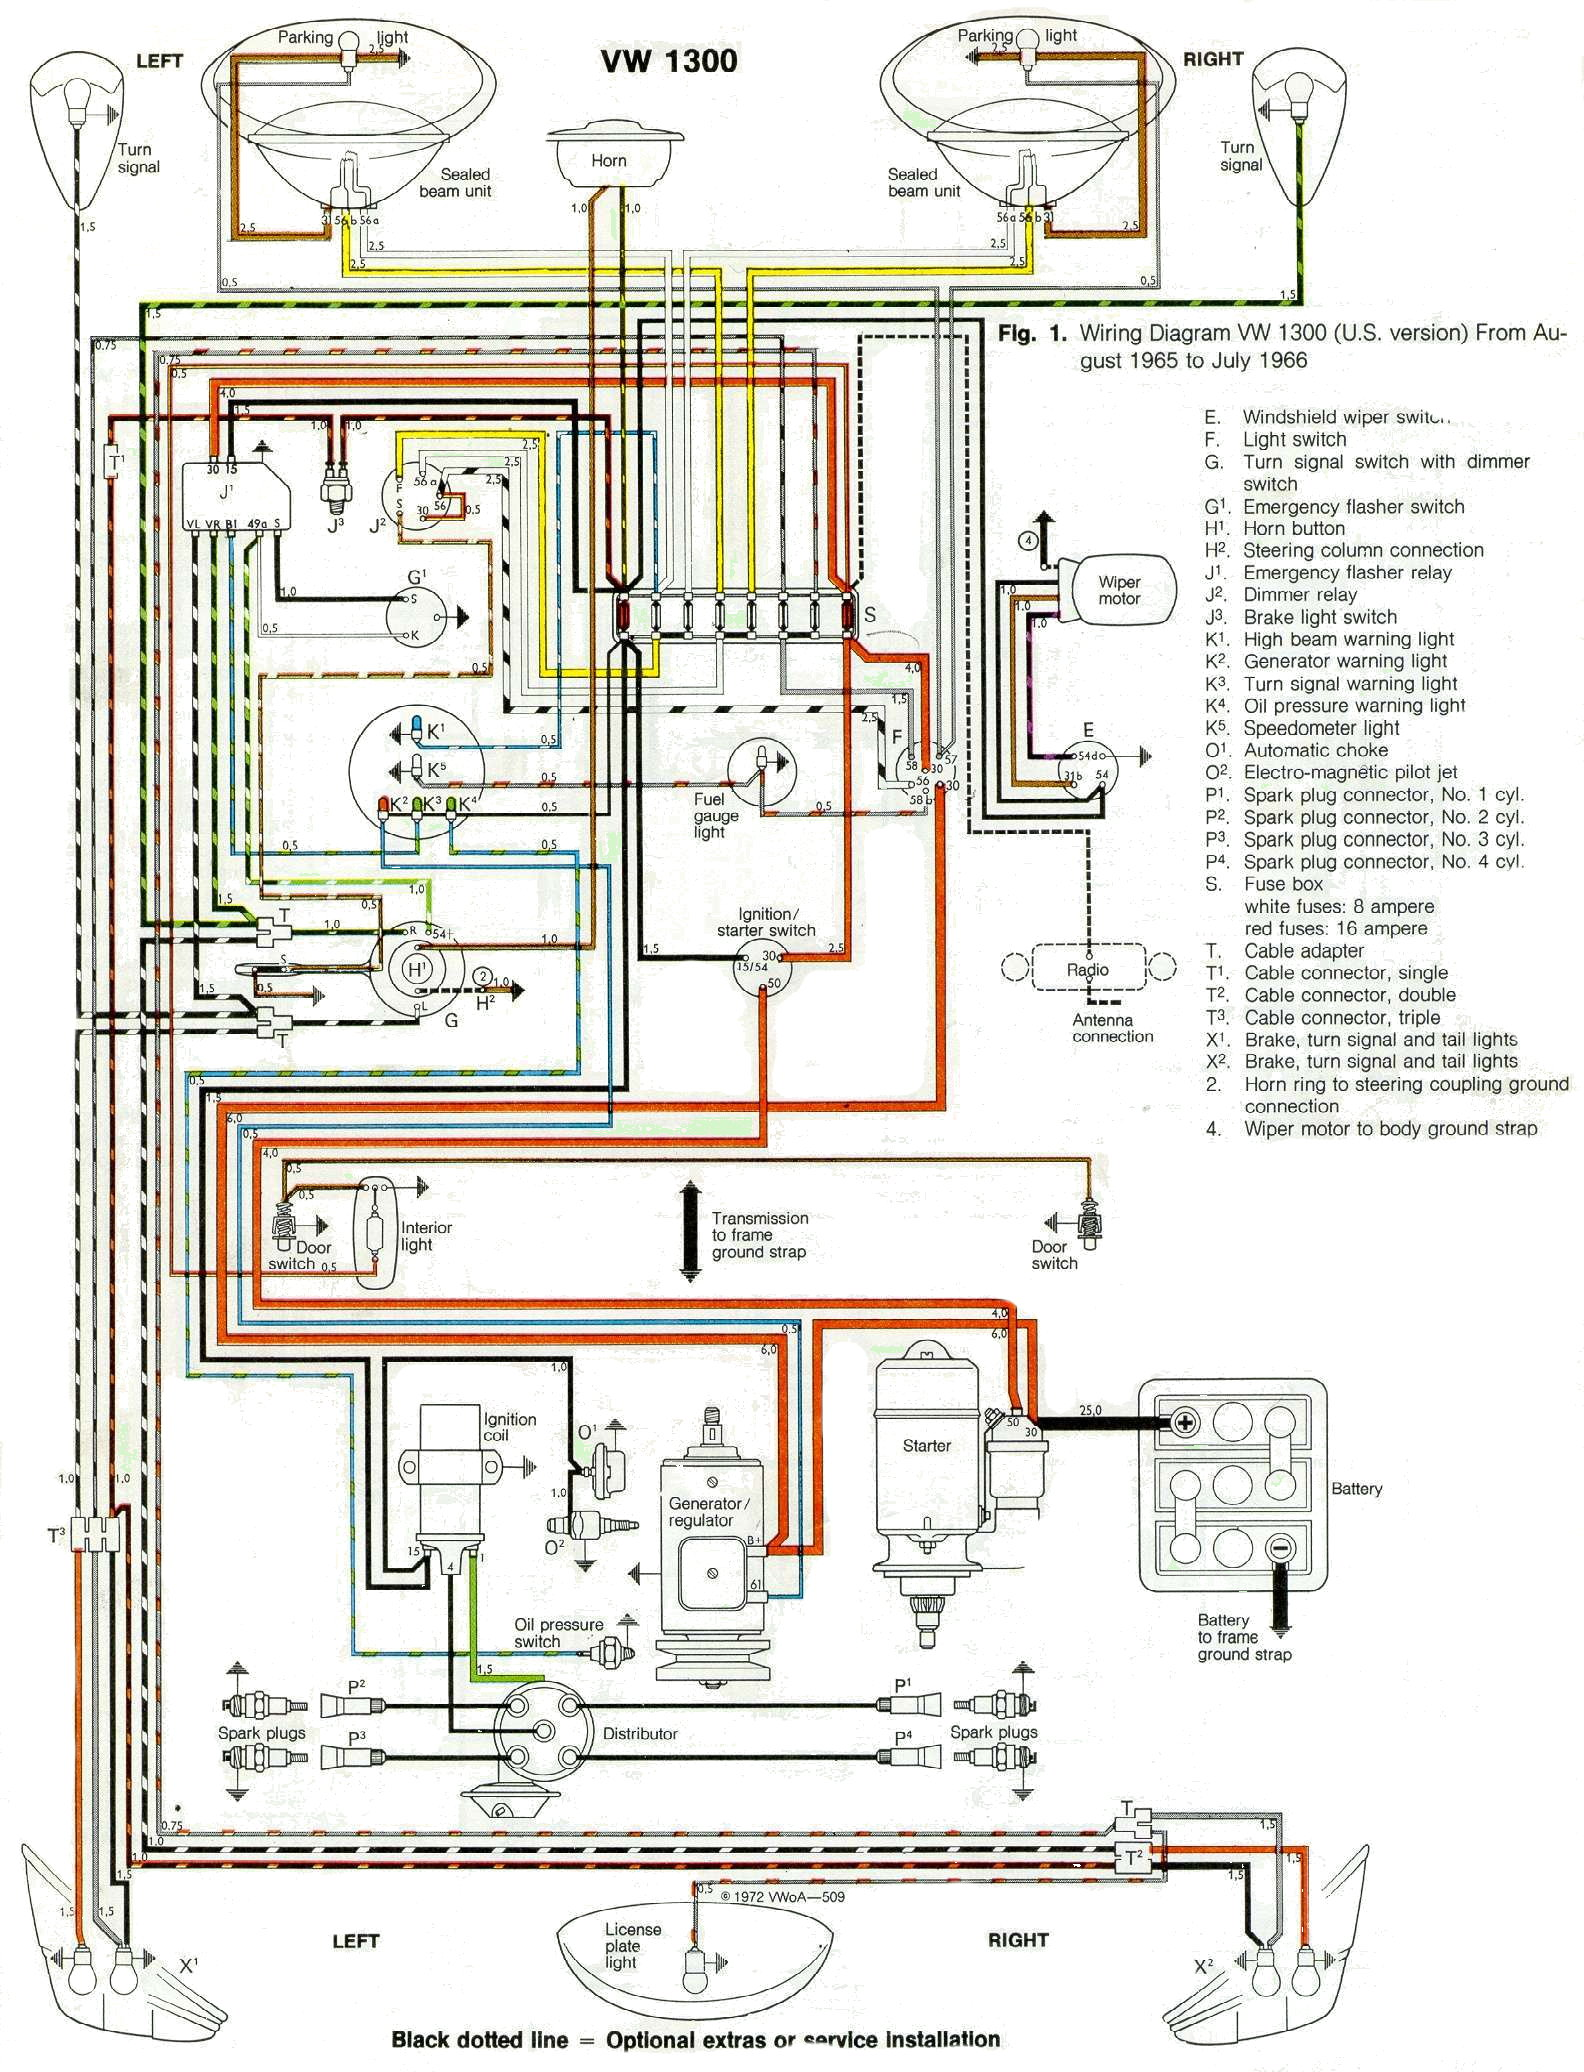 2000 volkswagen beetle wiring diagram free picture 16 8 combatarms2000 volkswagen beetle wiring diagram free picture 20 4 kenmo lp de u2022 rh 20 4 kenmo lp de 2000 vw beetle engine diagram 2000 vw beetle engine diagram